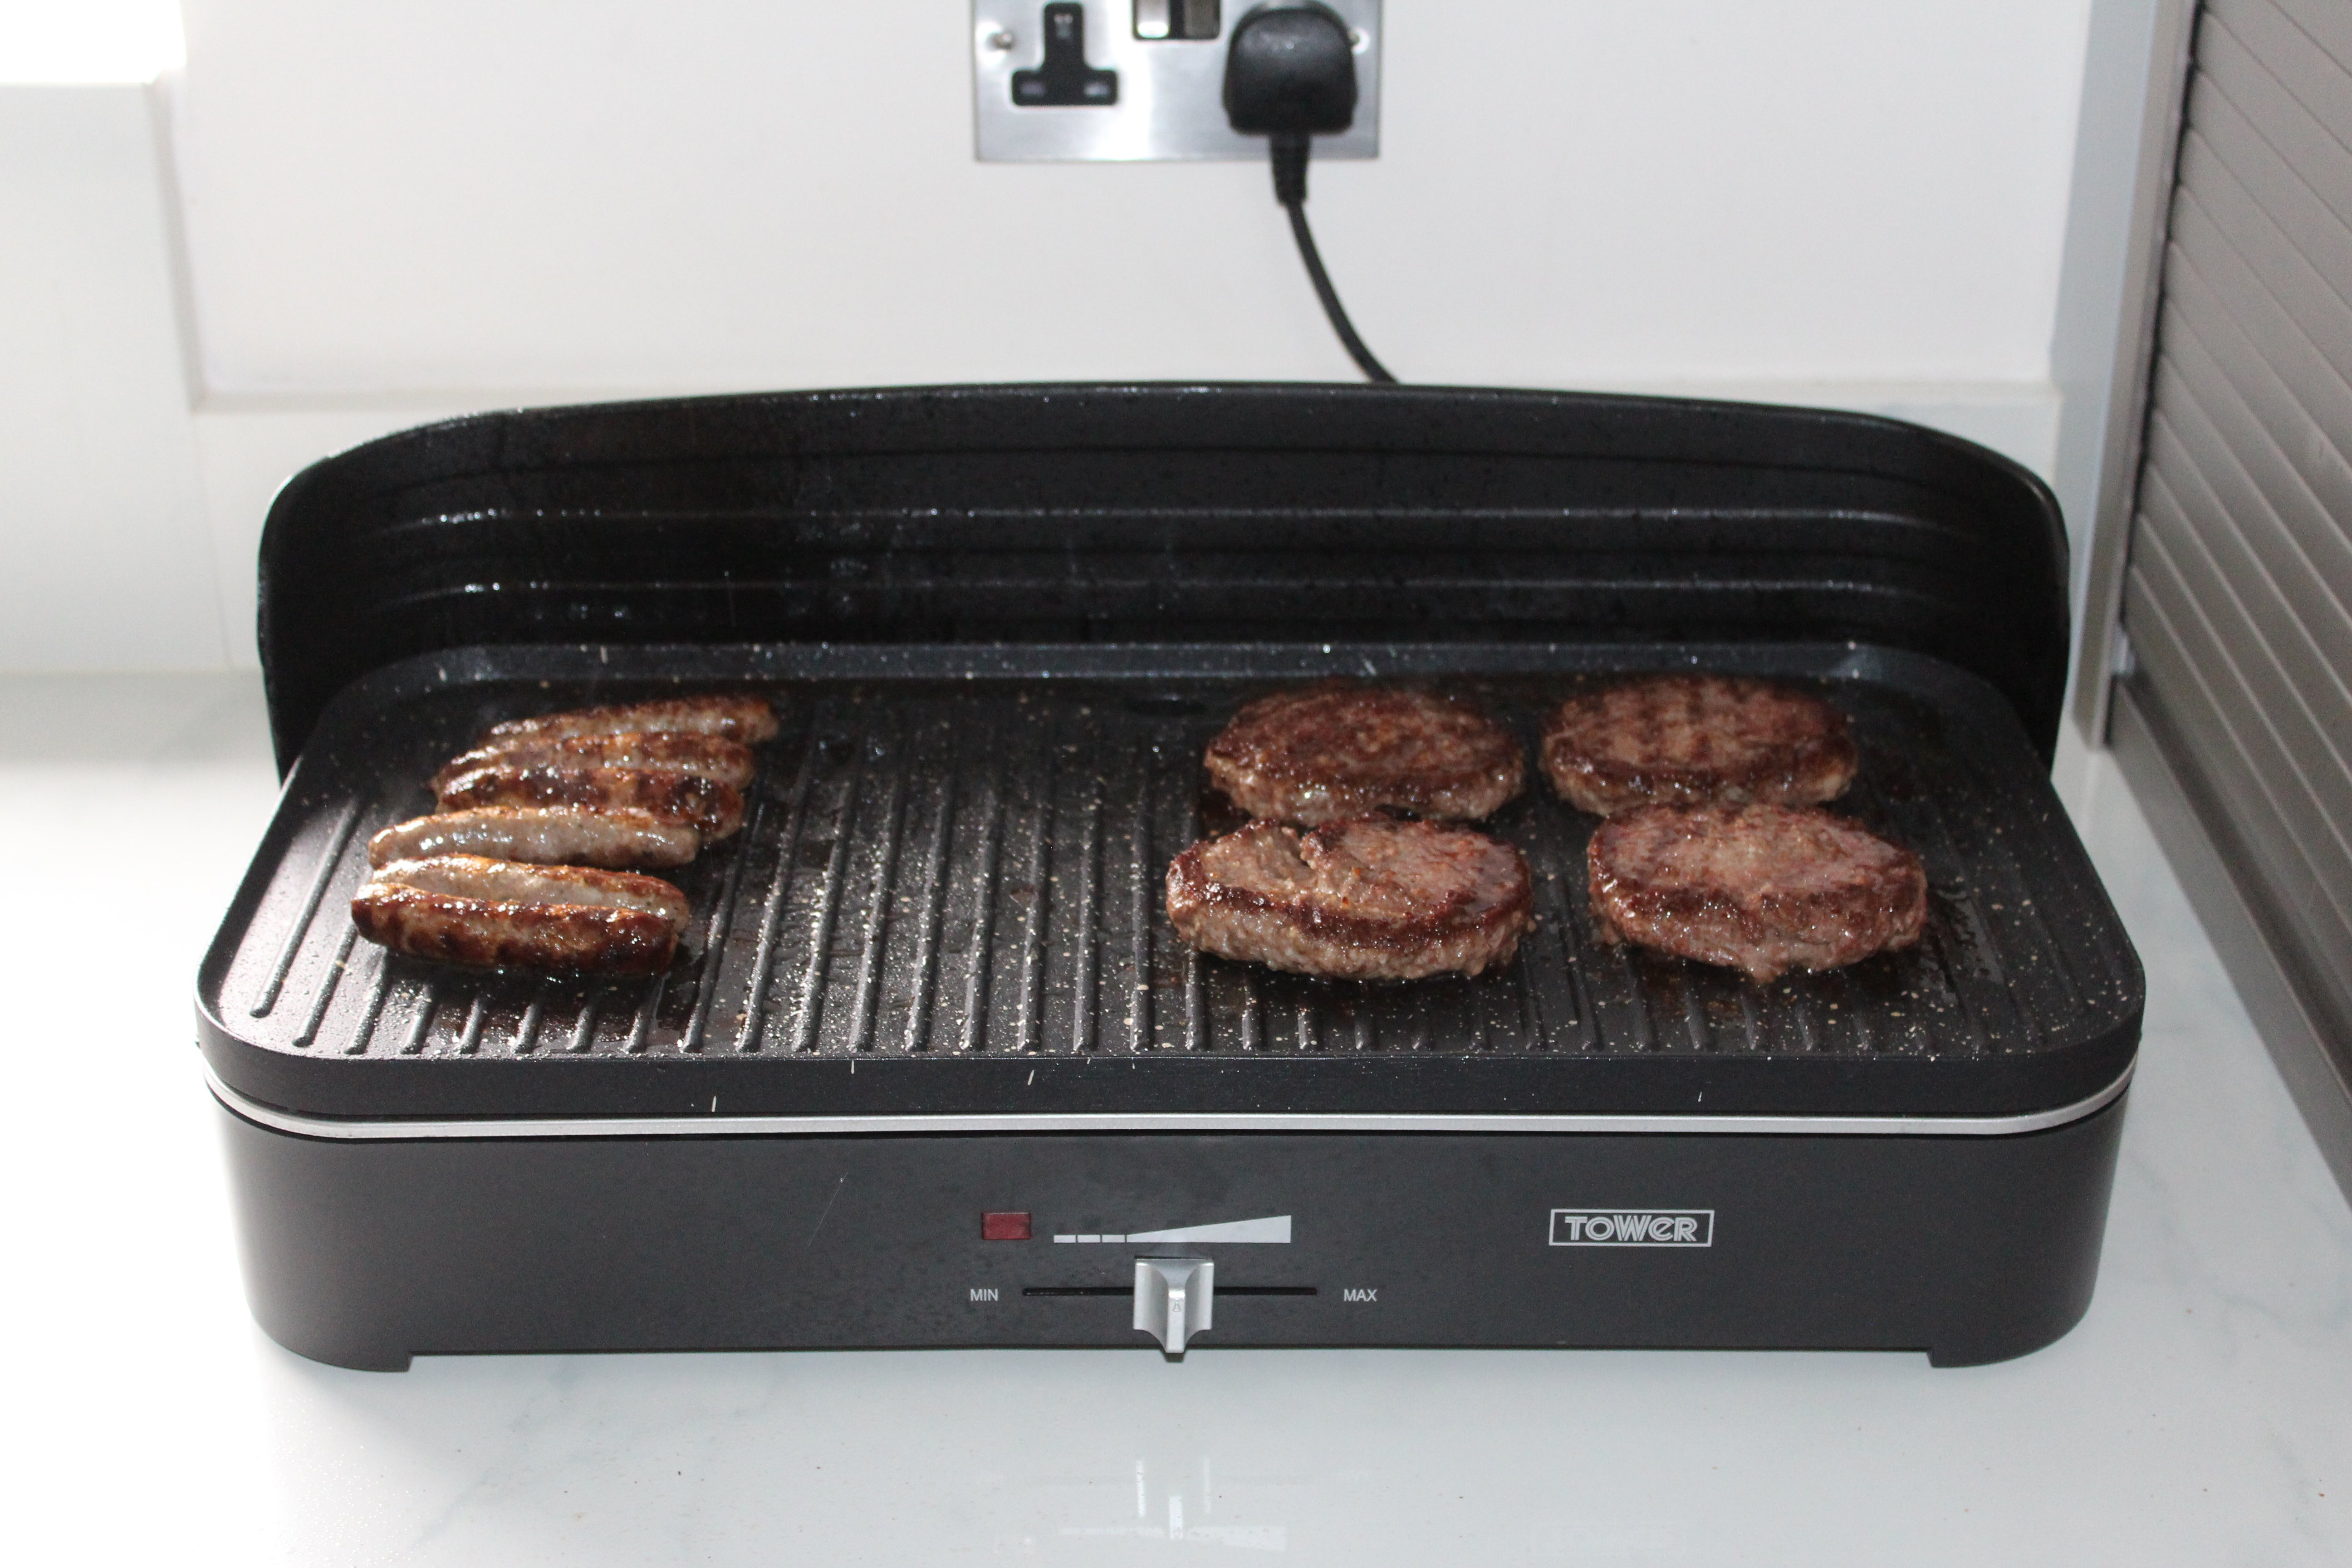 Tower T14028 Indoor Outdoor Electric Barbecue Grill Review